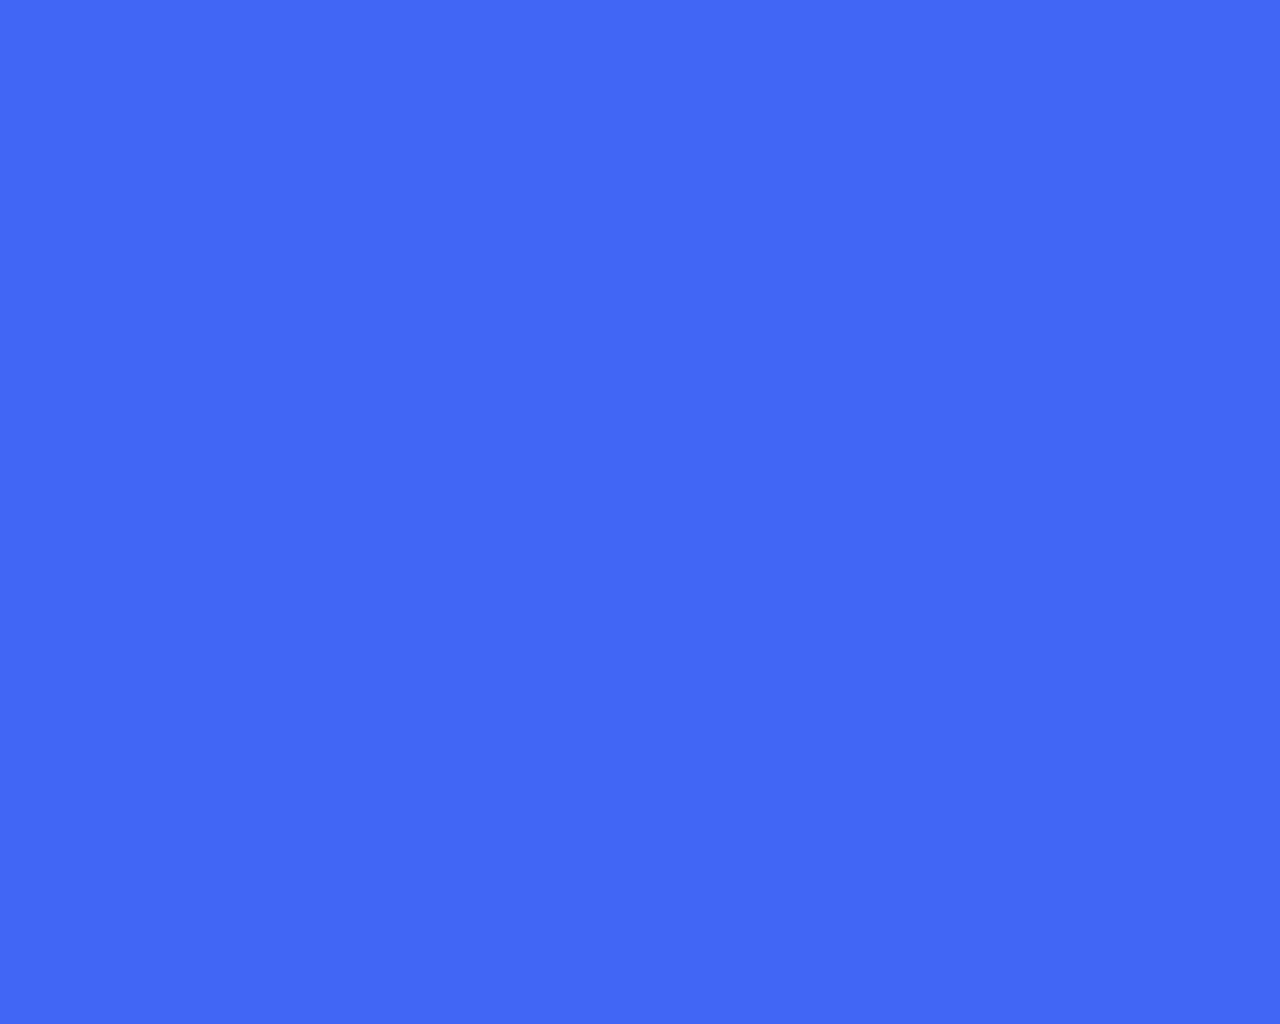 1280x1024 Ultramarine Blue Solid Color Background